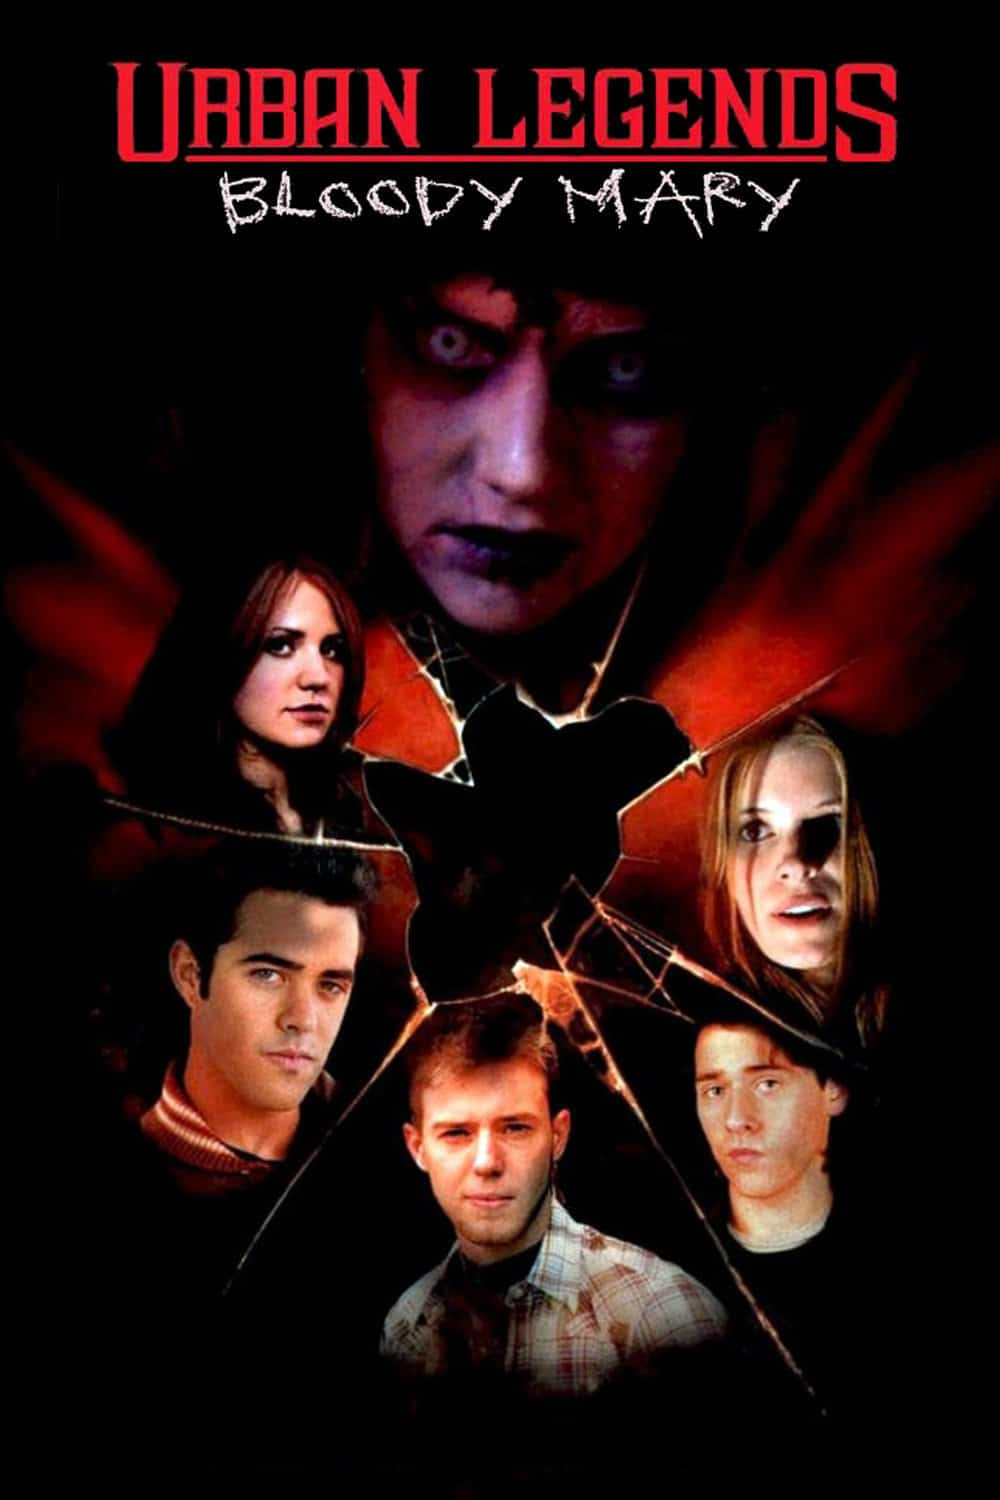 Urban Legends: Bloody Mary, 2005